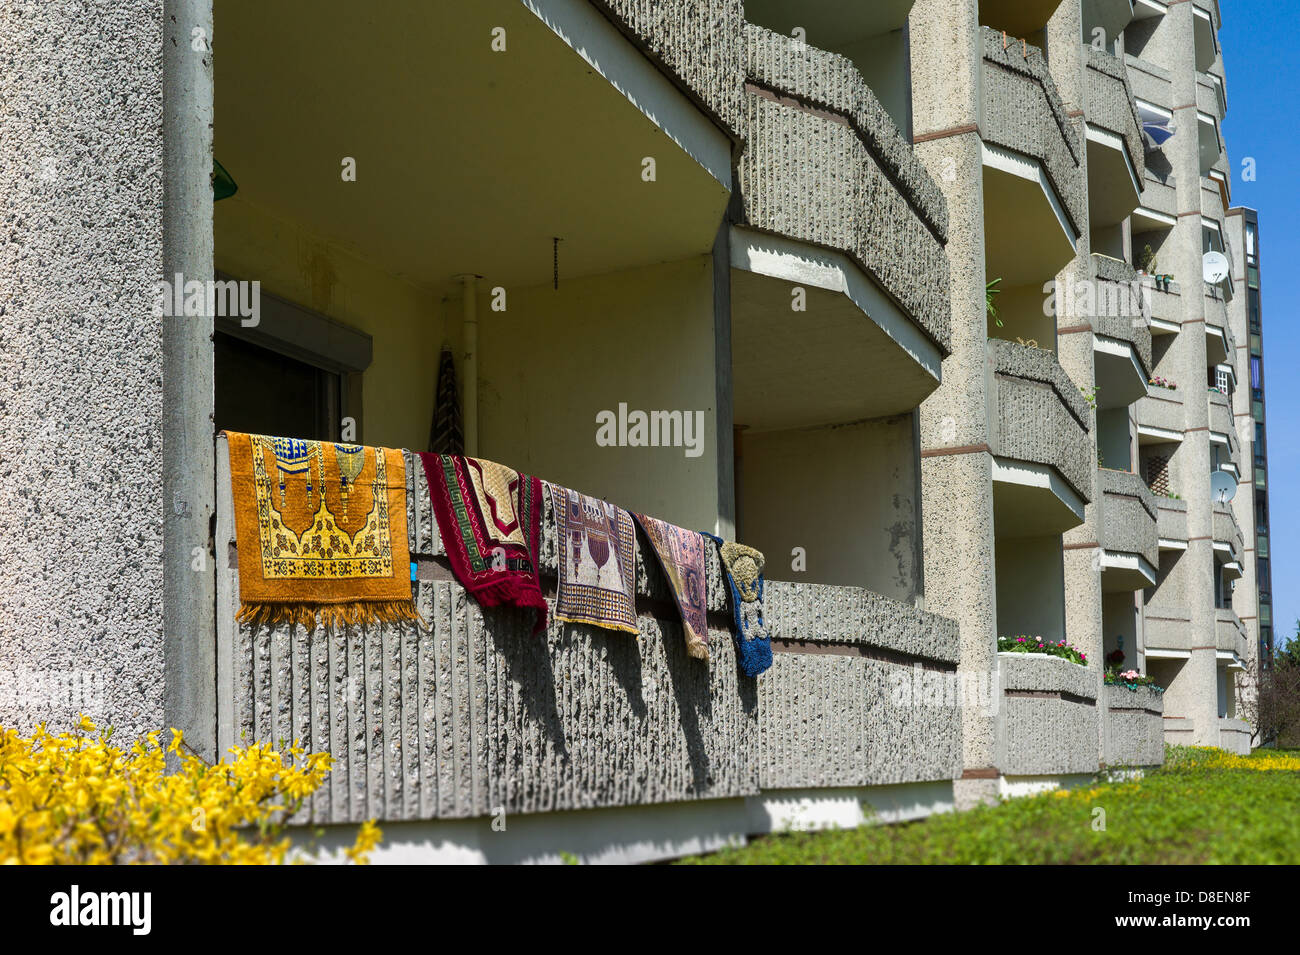 Berlin, Germany, carpets were laid out to dry over the Balkonbruestung - Stock Image